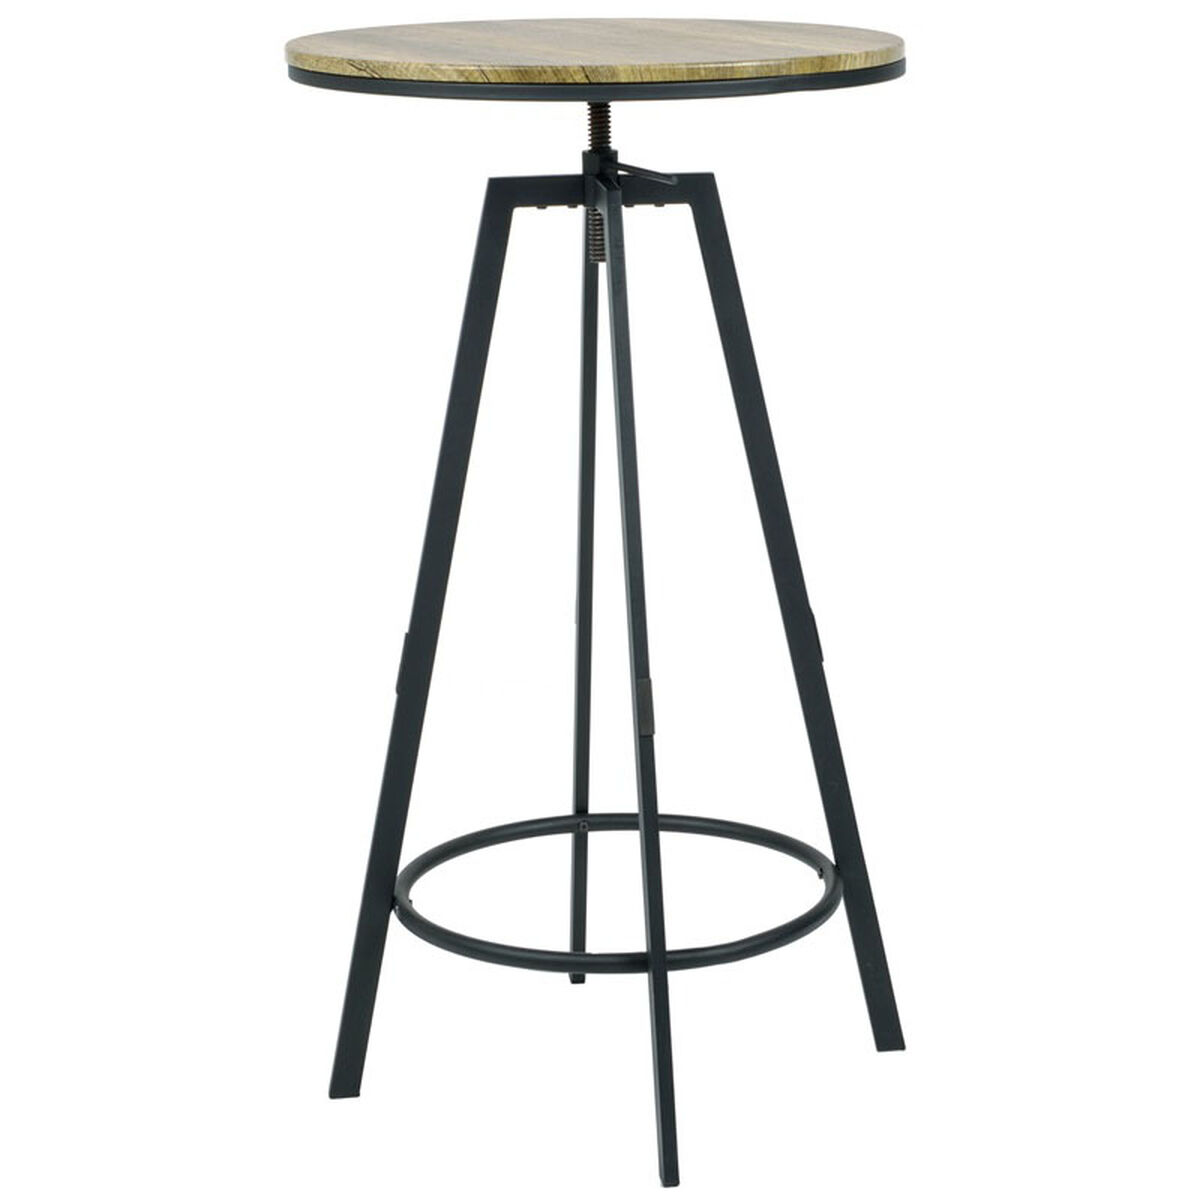 Commercial seating products msw t 100 swivel table csp msw for Cie publication 85 table 2